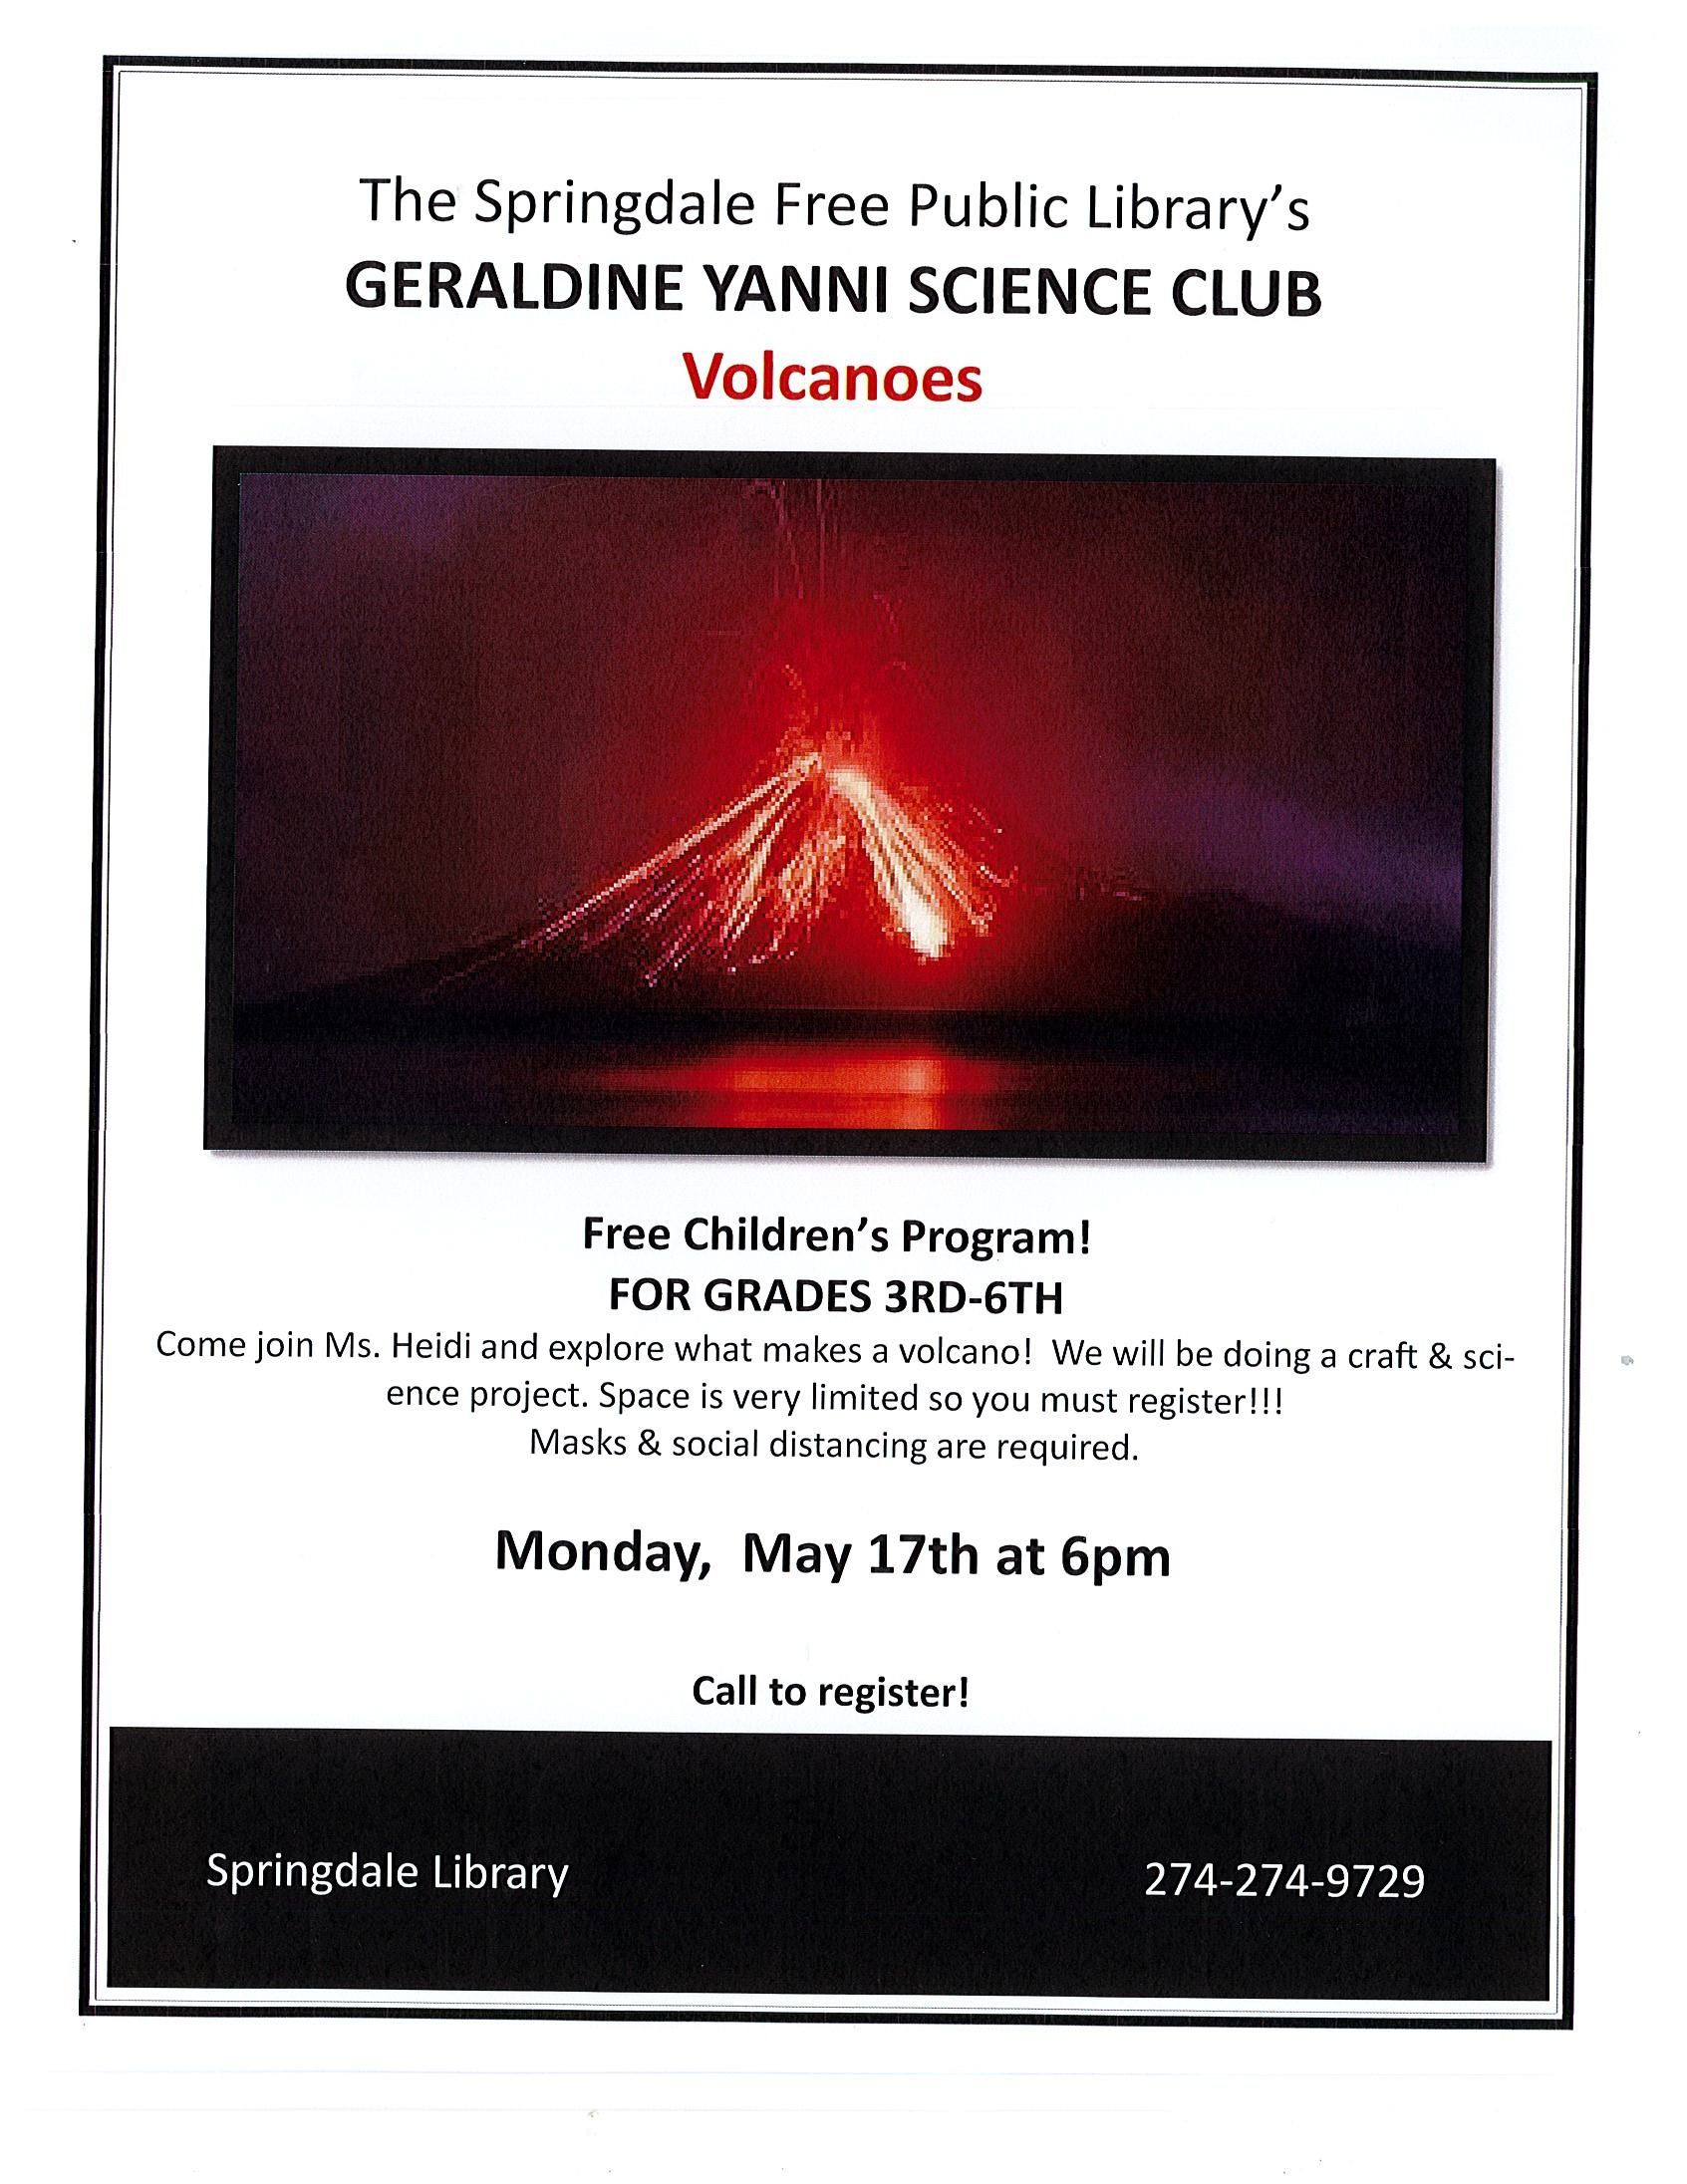 Geraldine Yanni Science Club